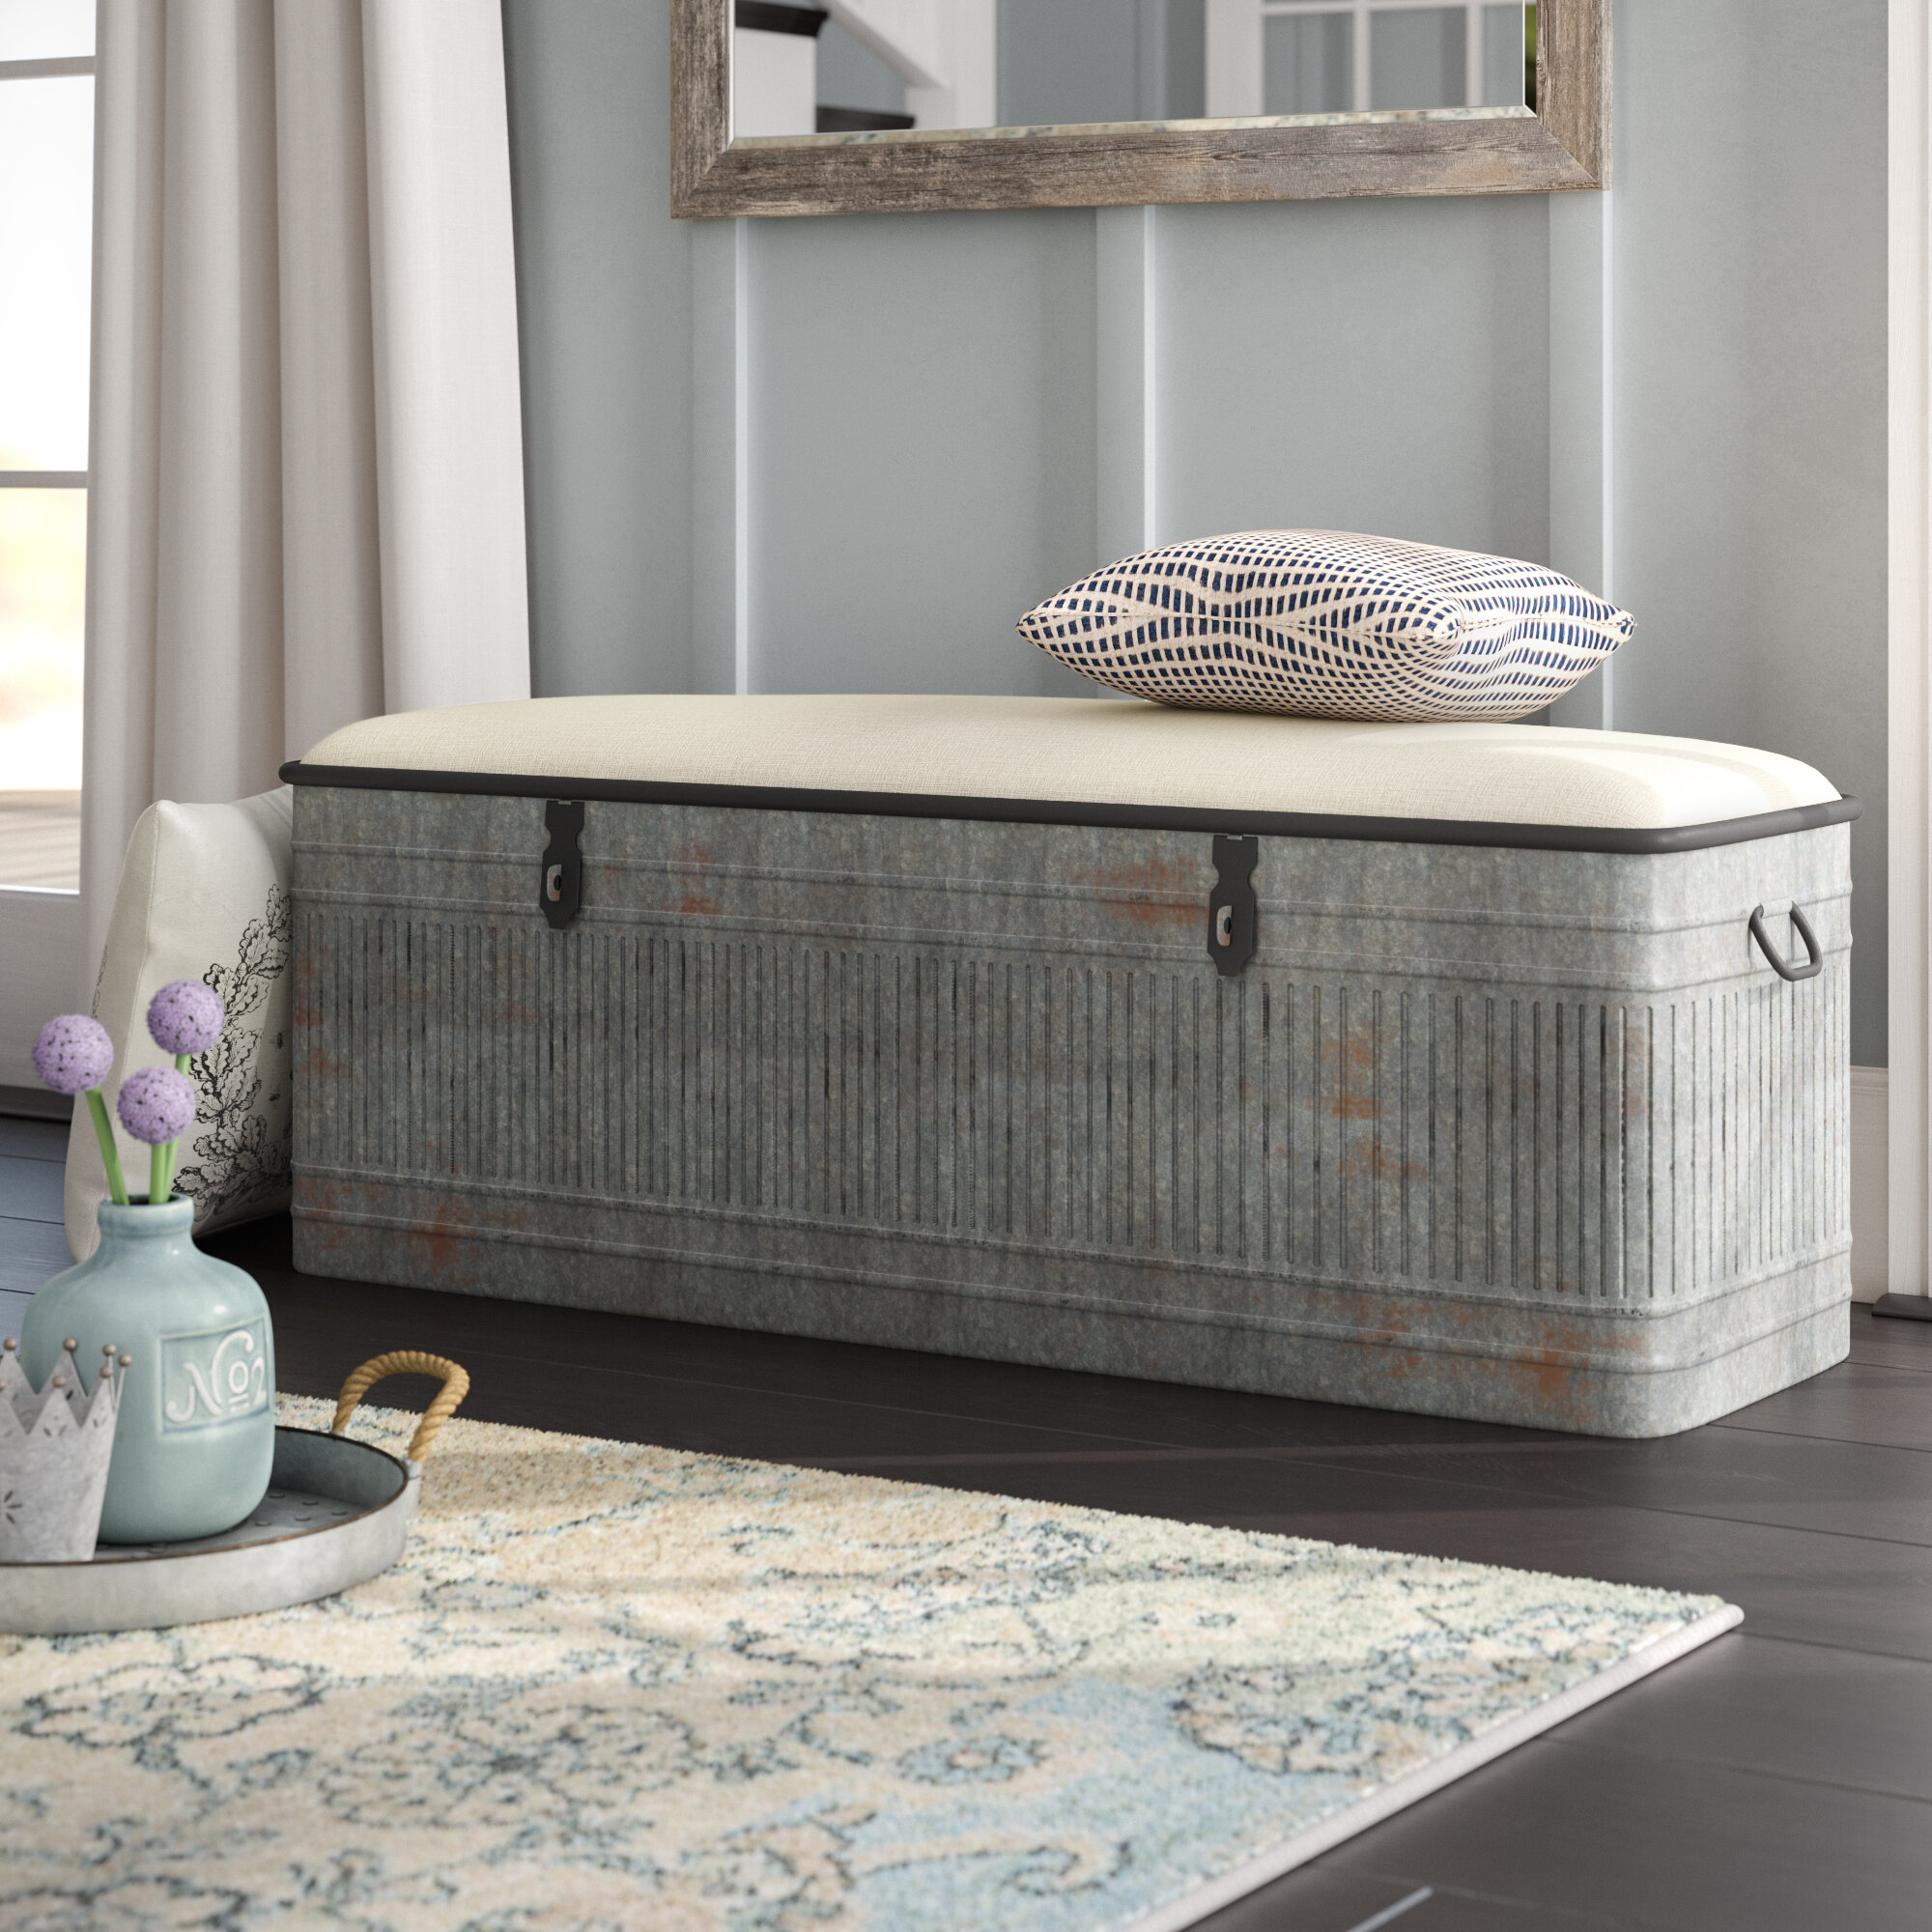 Brilliant August Grove Dublin Upholstered Storage Bench Reviews Caraccident5 Cool Chair Designs And Ideas Caraccident5Info